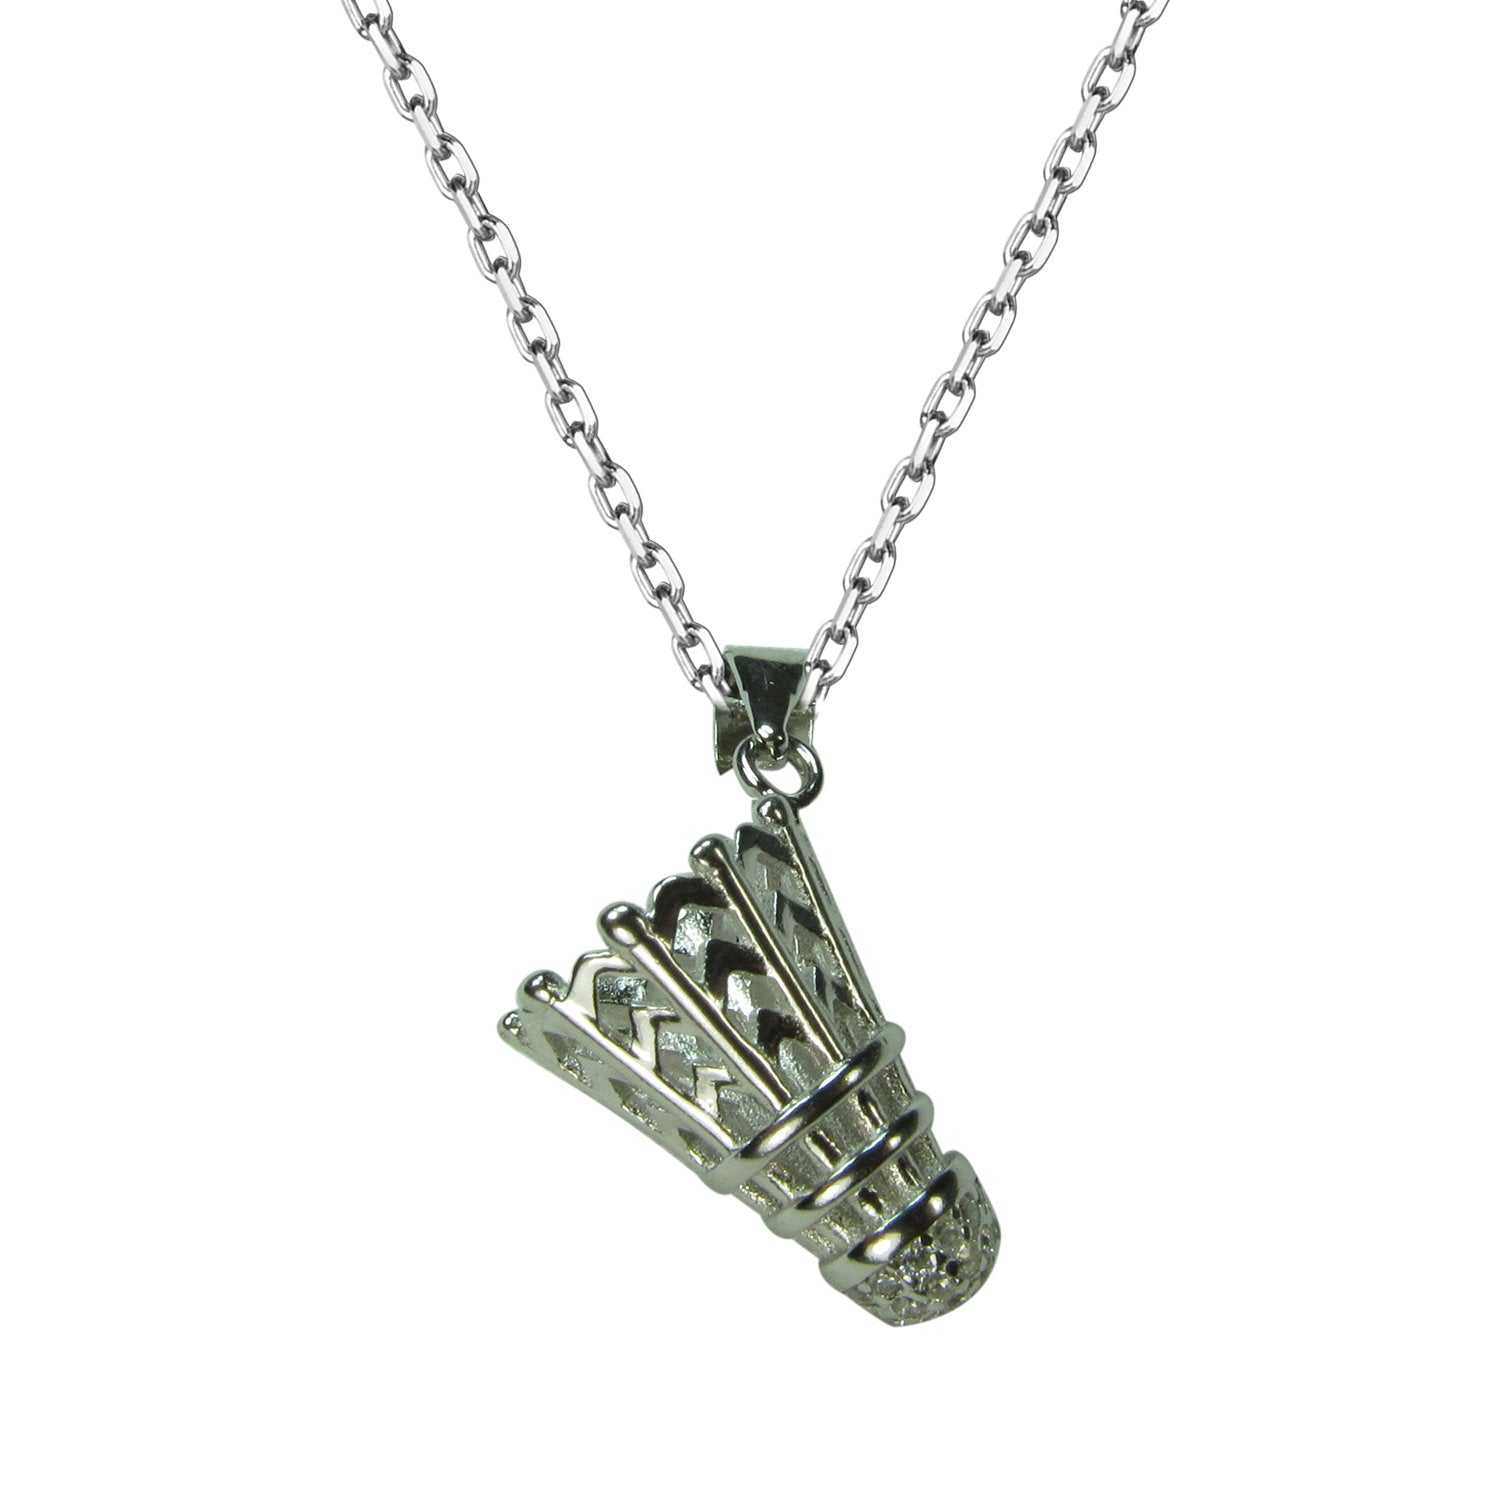 BADMINTON PAVE CZ STERLING SILVER NECKLACE